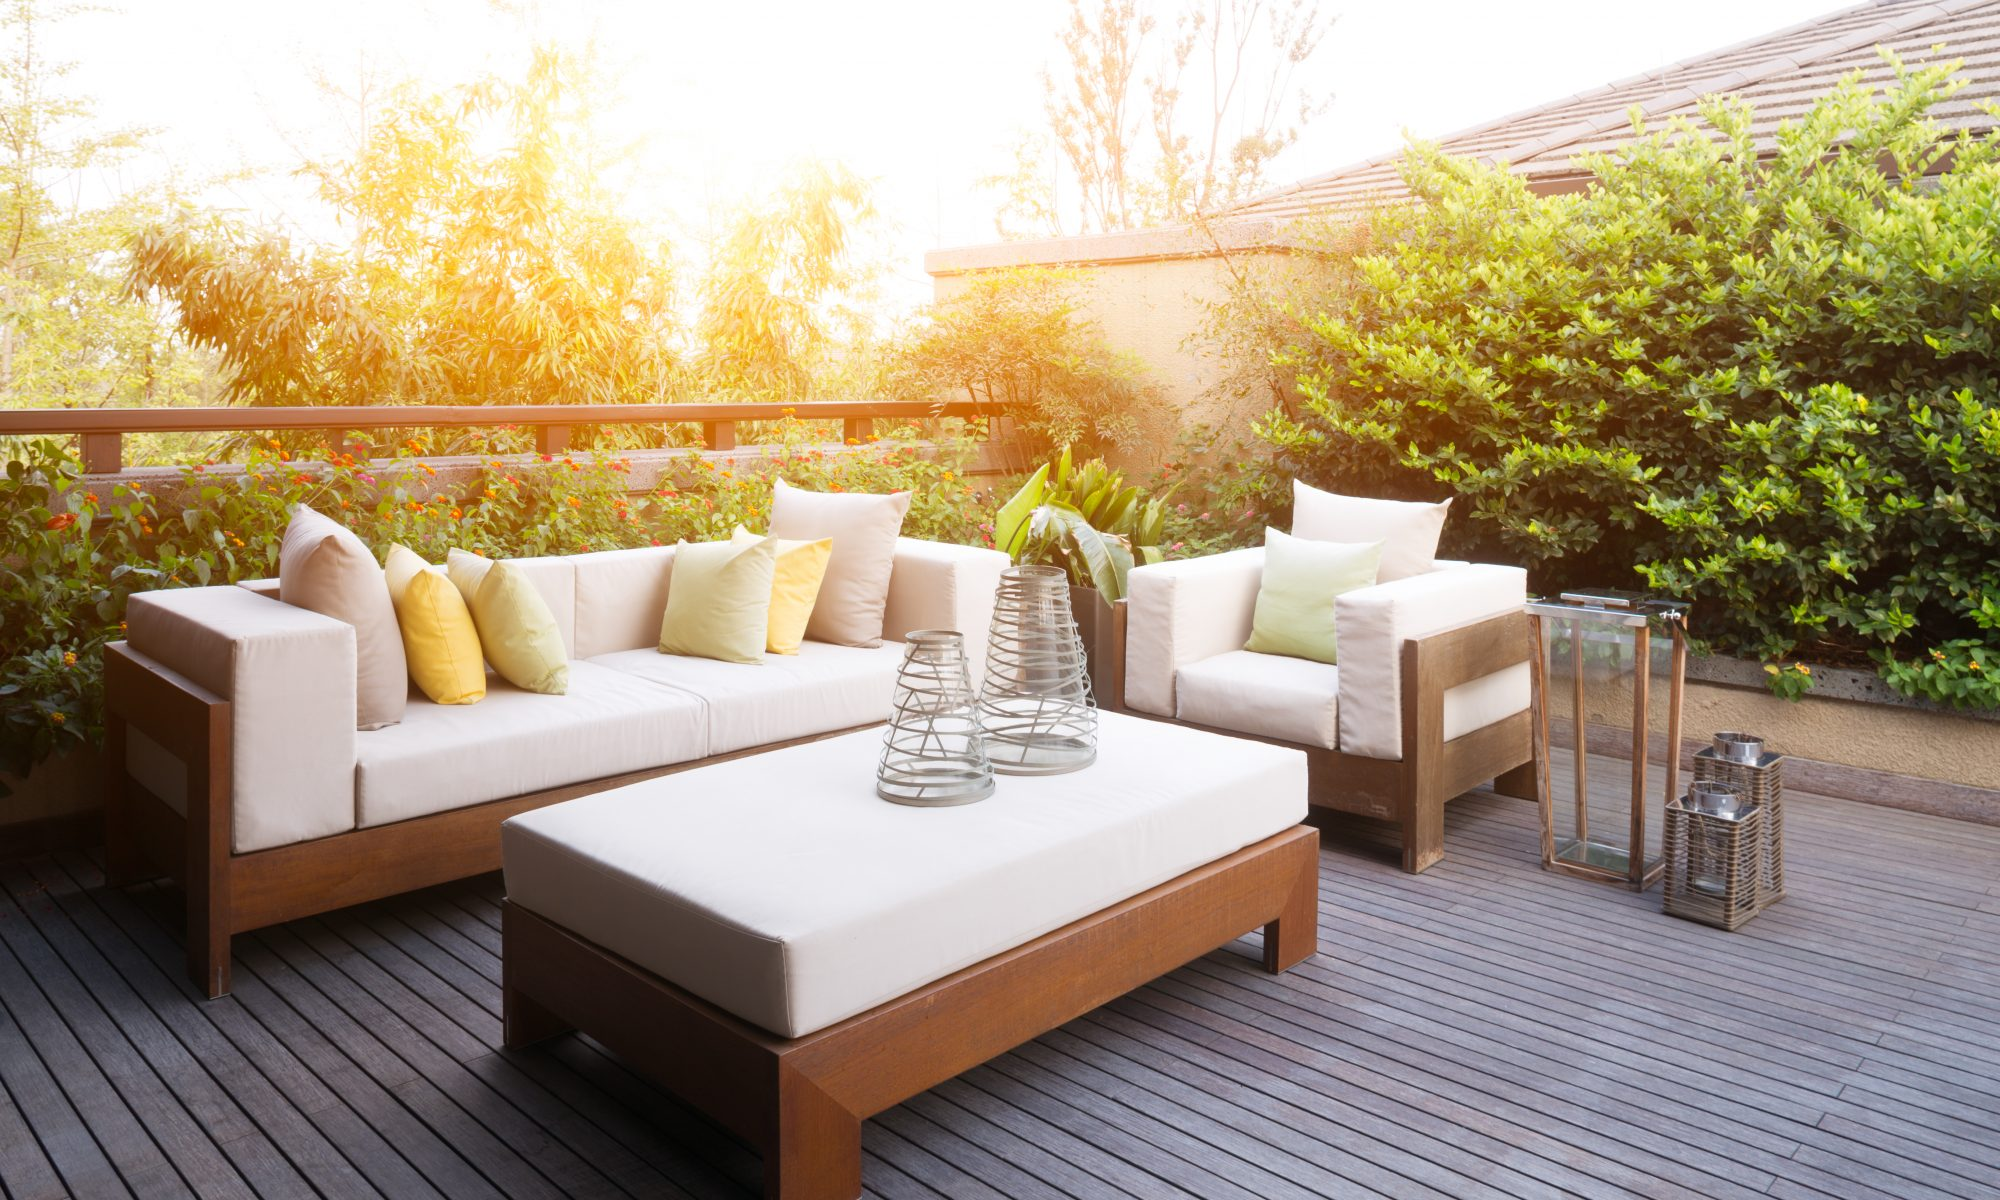 Considerations When Planning A Patio Project